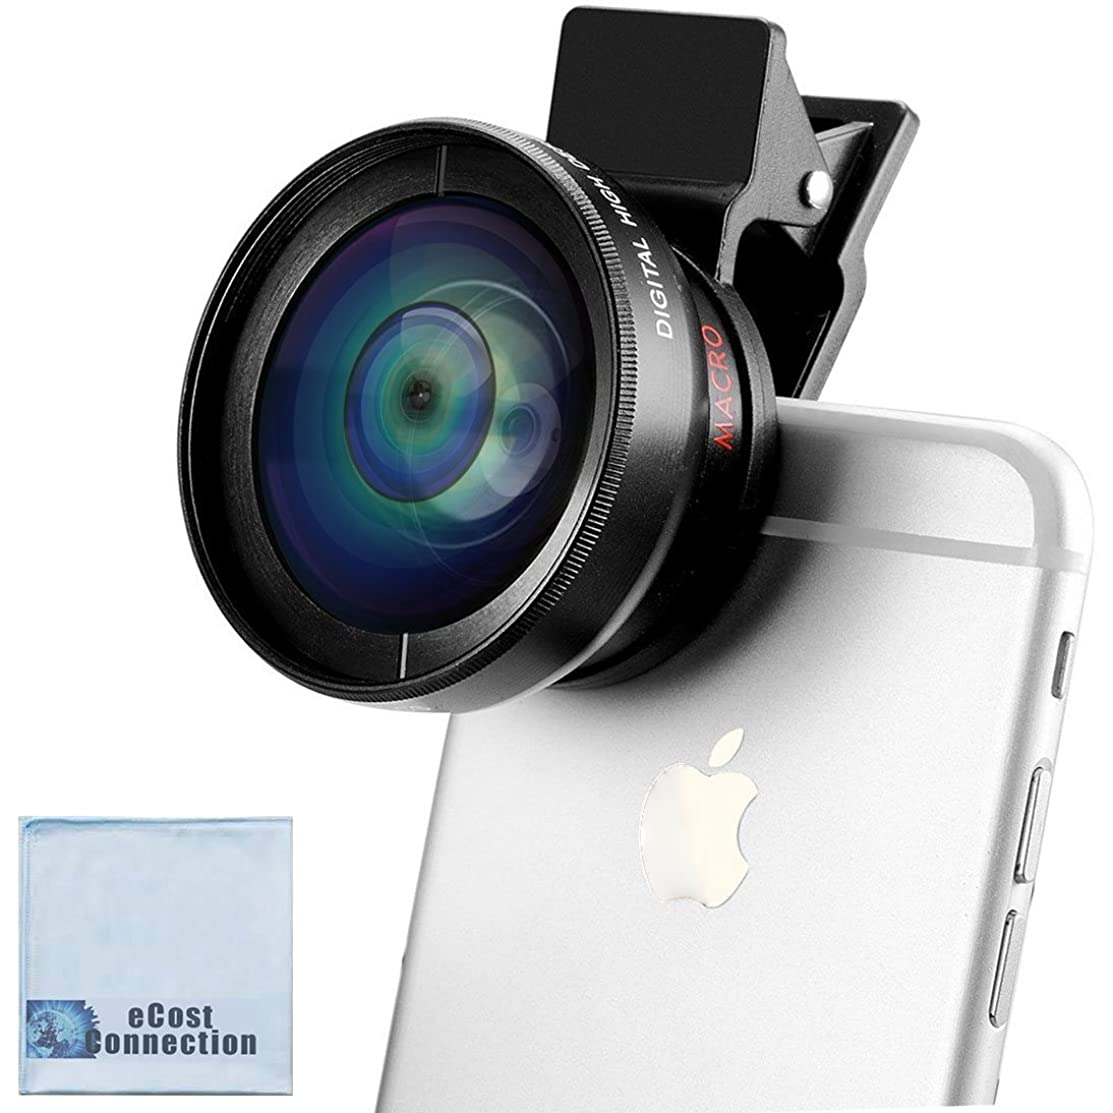 2-in-1 Professional Universal Smartphone HD Camera Lens Kit (Super Wide Angle & Macro Lens) for iPhones 8 7, 7 Plus, 6s, 6s Plus, SE, 6 Plus, 6, 5, 5S, 5C + eCostConnection Microfiber Cloth